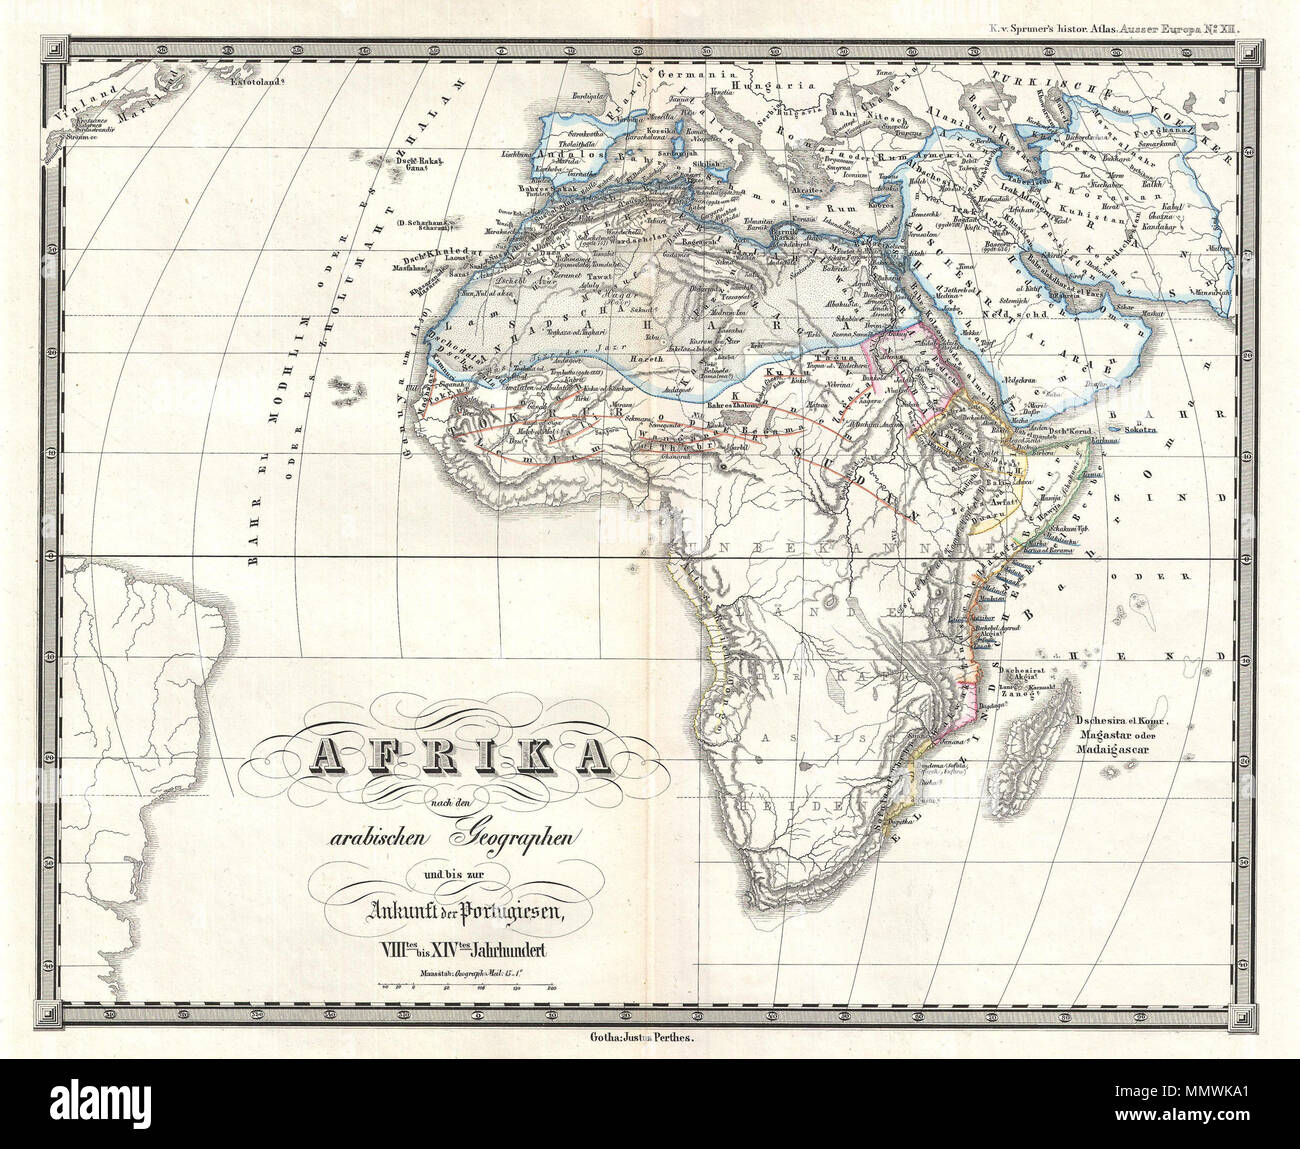 English: This is Karl von Spruner's 1855 map of Africa from the